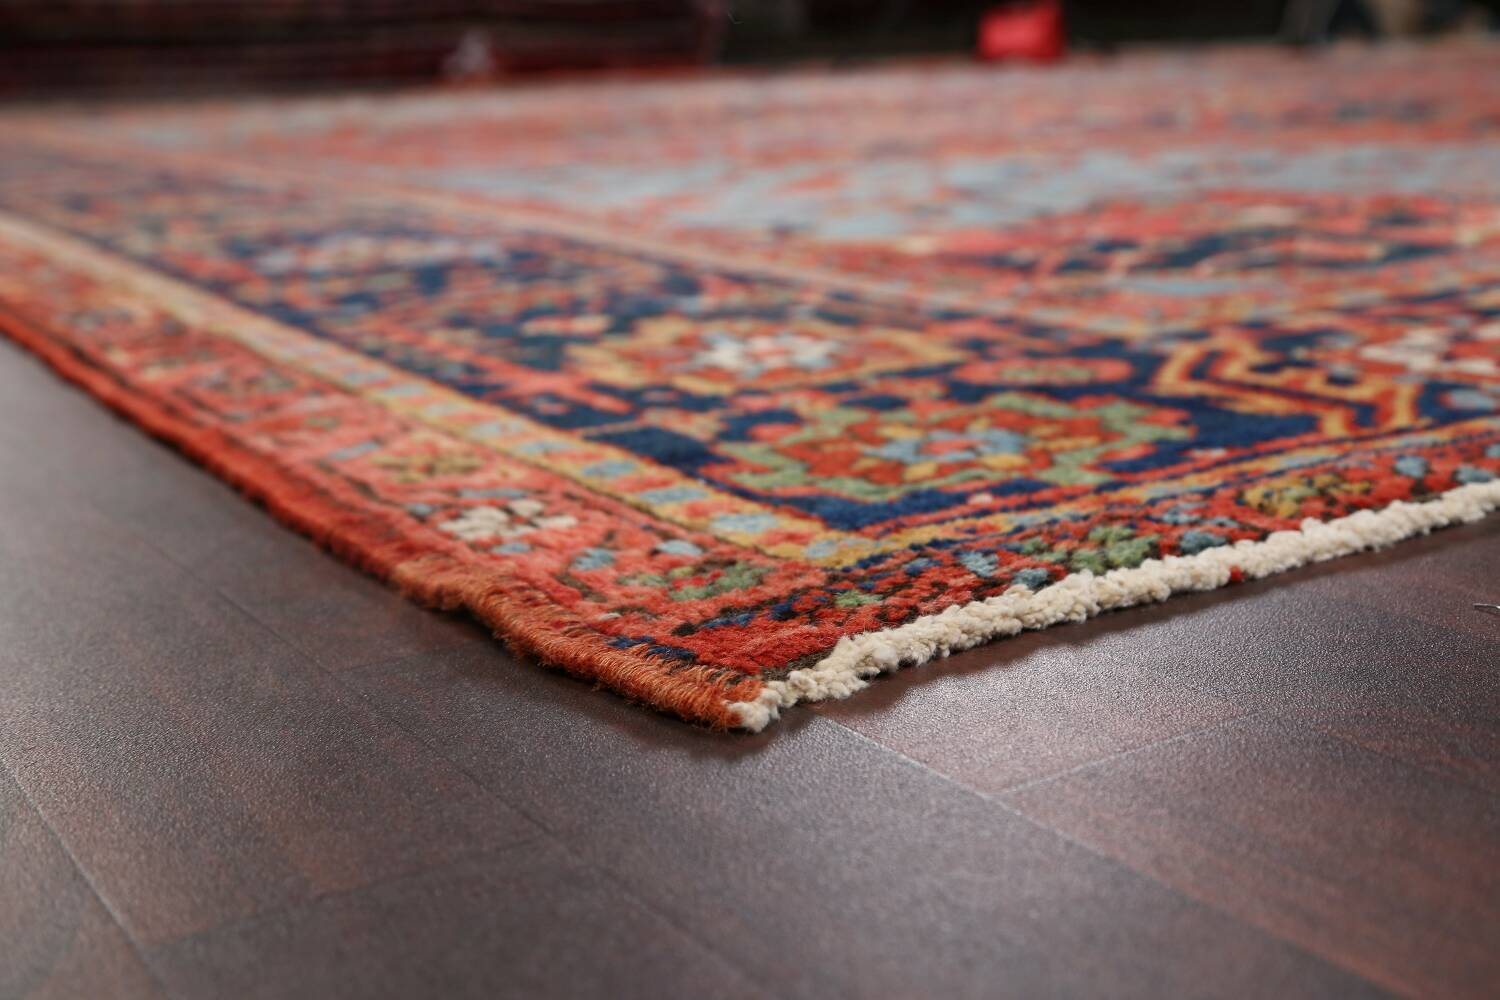 Pre-1900 Antique Vegetable Dye Heriz Serapi Persian Rug 12x14 image 6